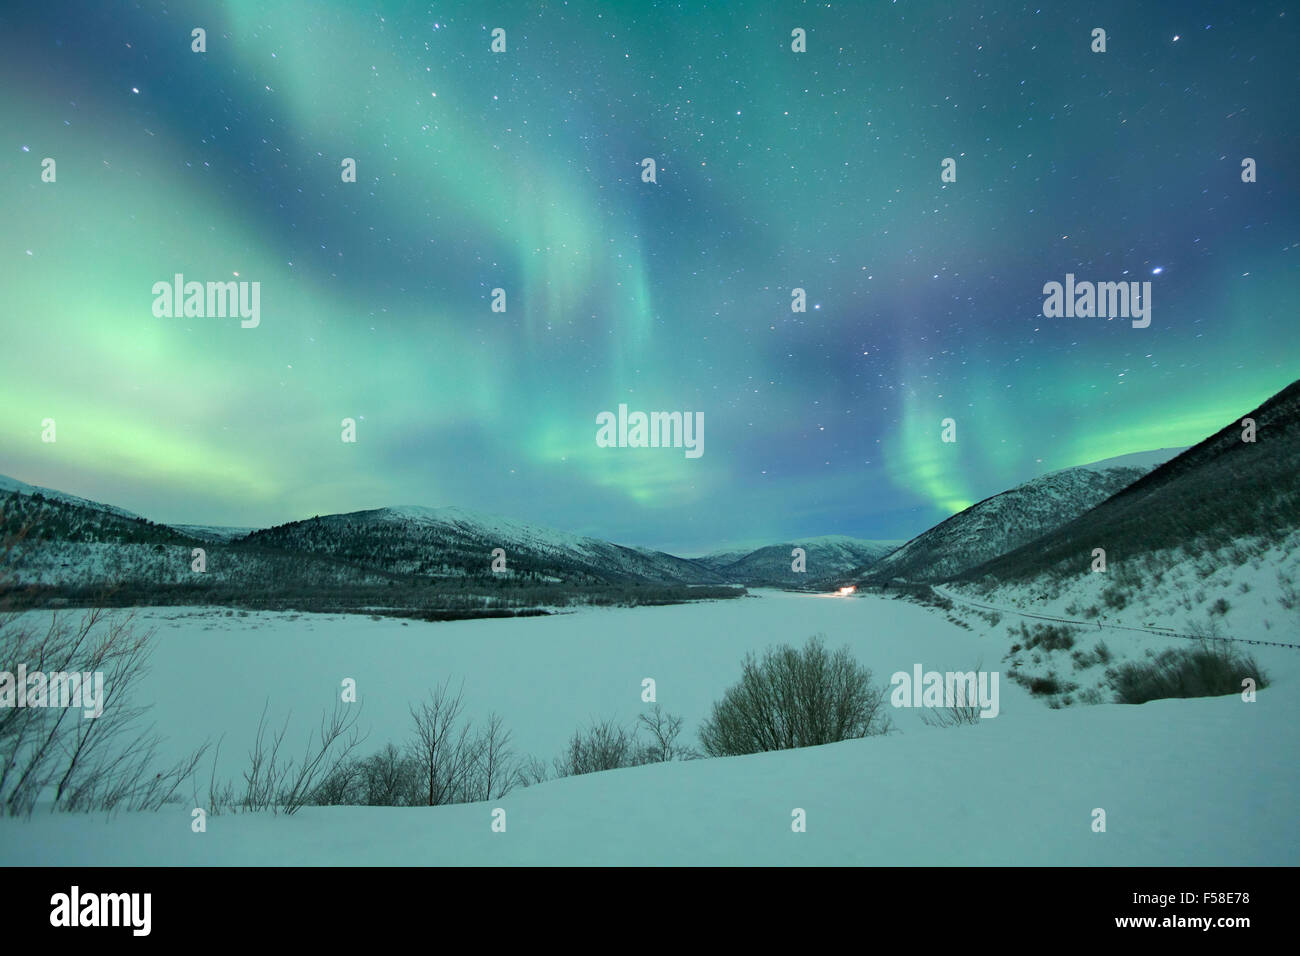 Spectacular aurora borealis (northern lights) over a snowy winter landscape in Finnish Lapland. - Stock Image